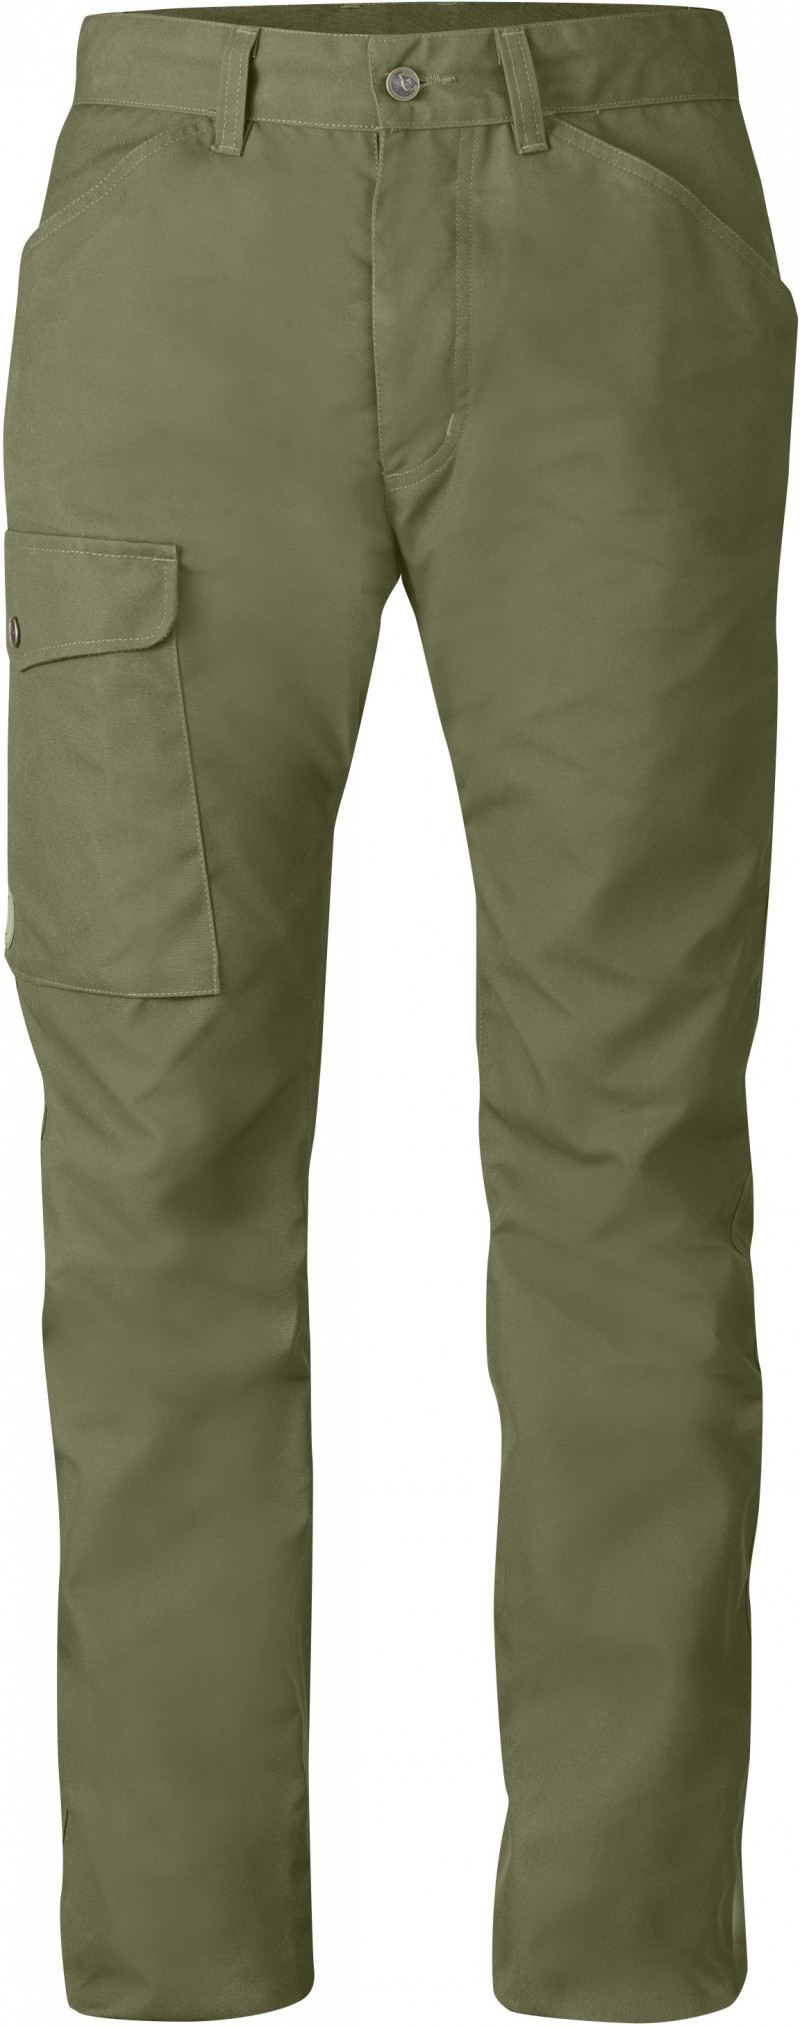 FjallRaven Trousers No. 26 Green-30